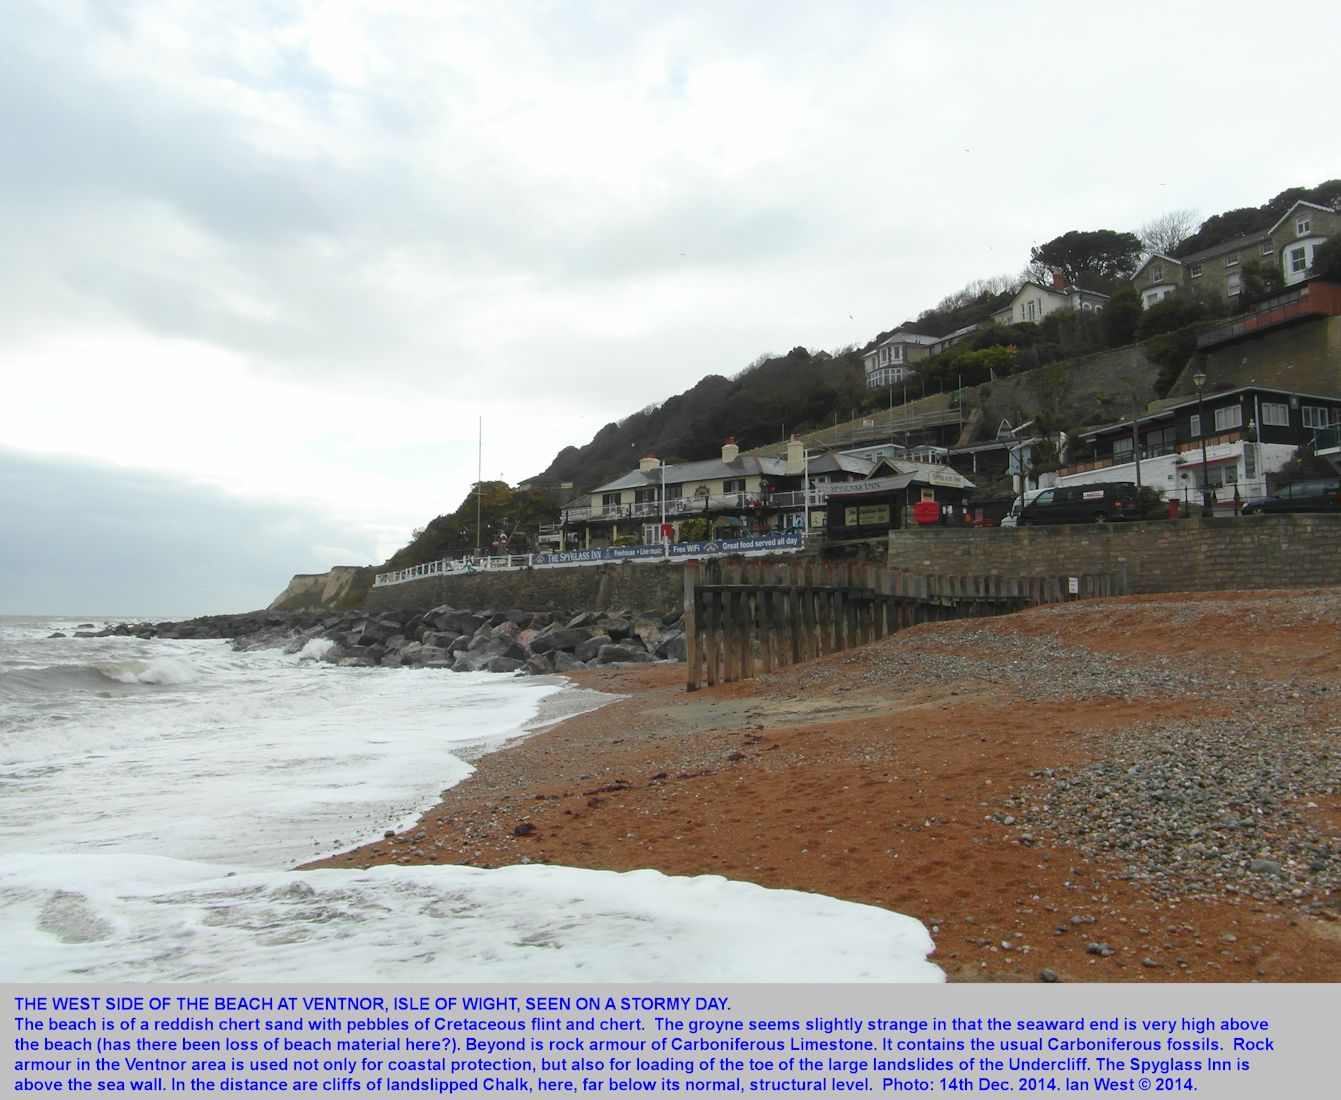 The west side of Ventnor Beach, Isle of Wight, on a stormy day, 14th December 2014, by Ian West